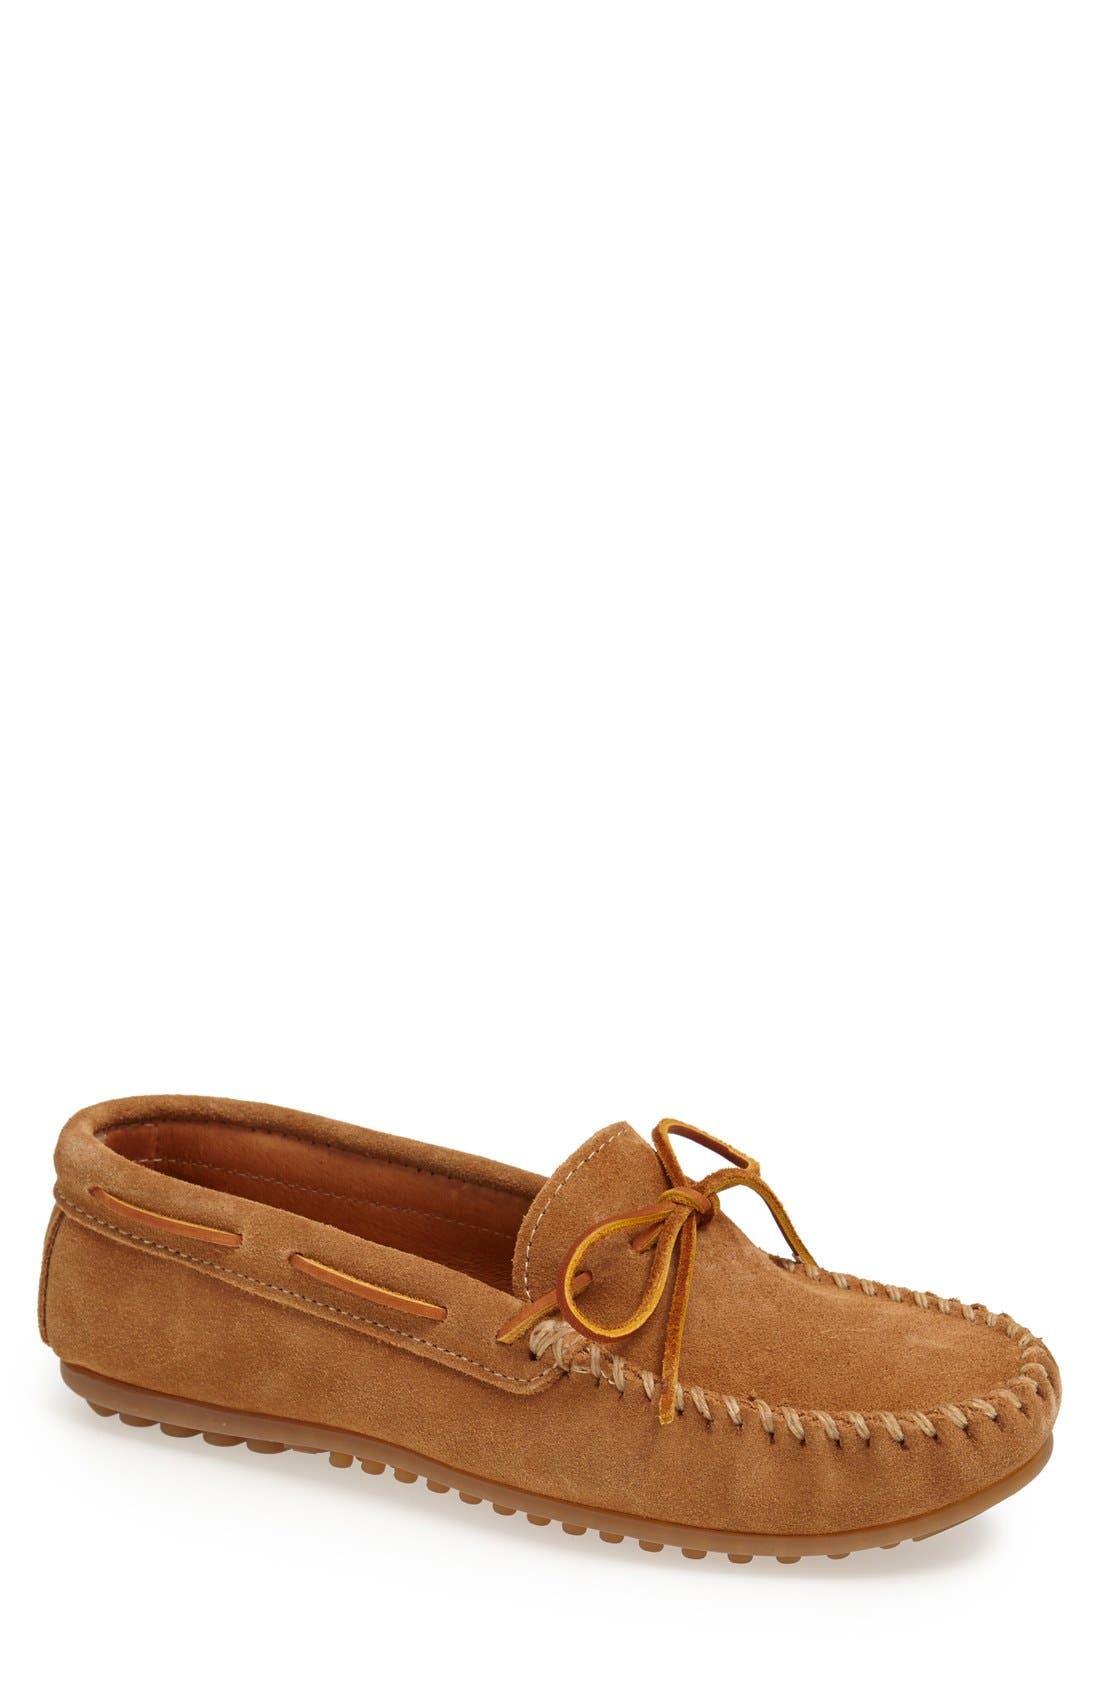 MINNETONKA, Suede Driving Shoe, Main thumbnail 1, color, TAUPE